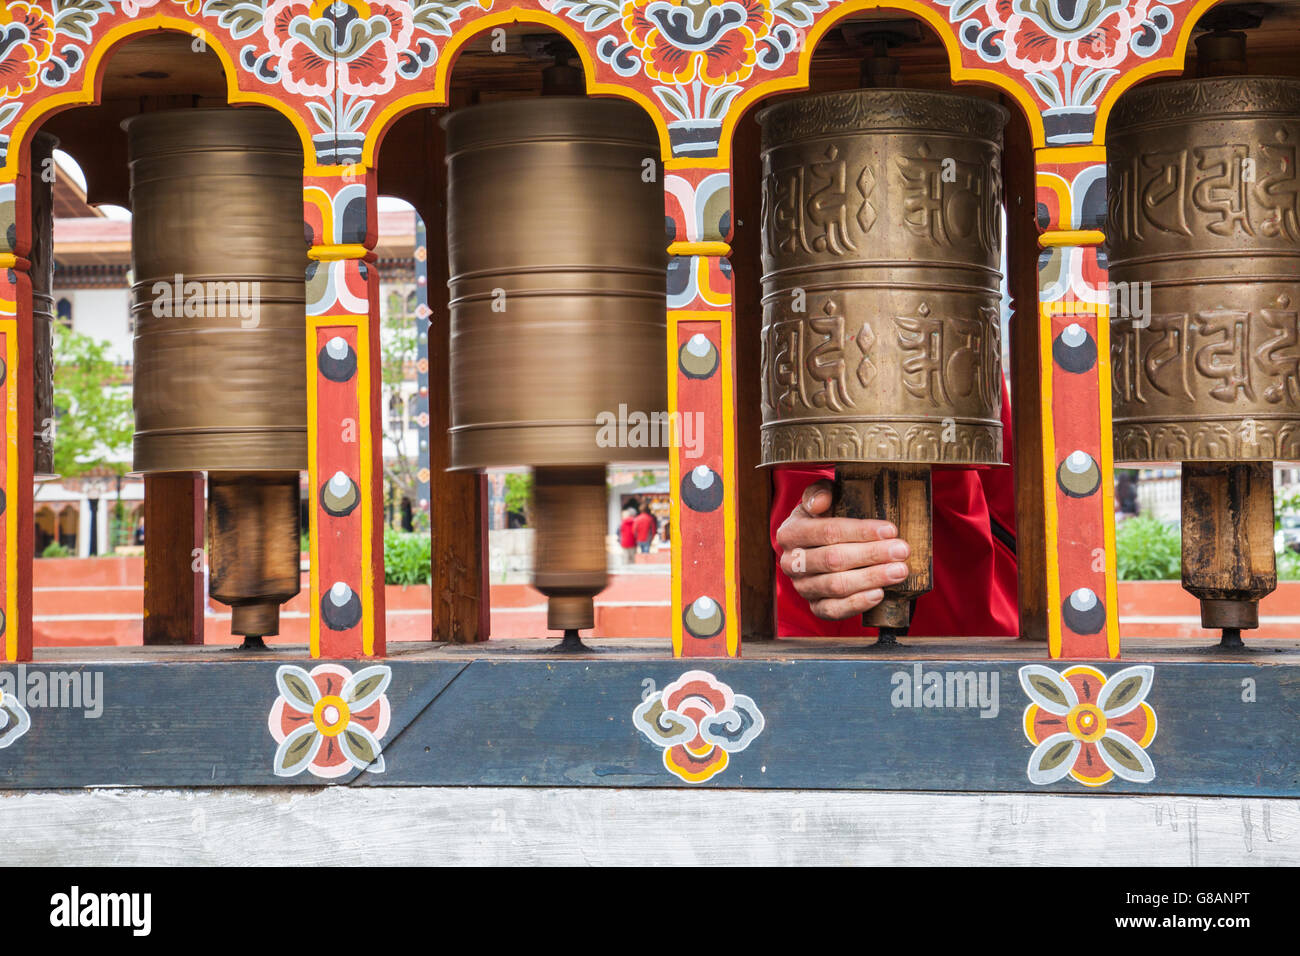 Typical prayer wheels used by Buddhists  to accumulate wisdom and merit and to purify negativities Thimphu Bhutan - Stock Image